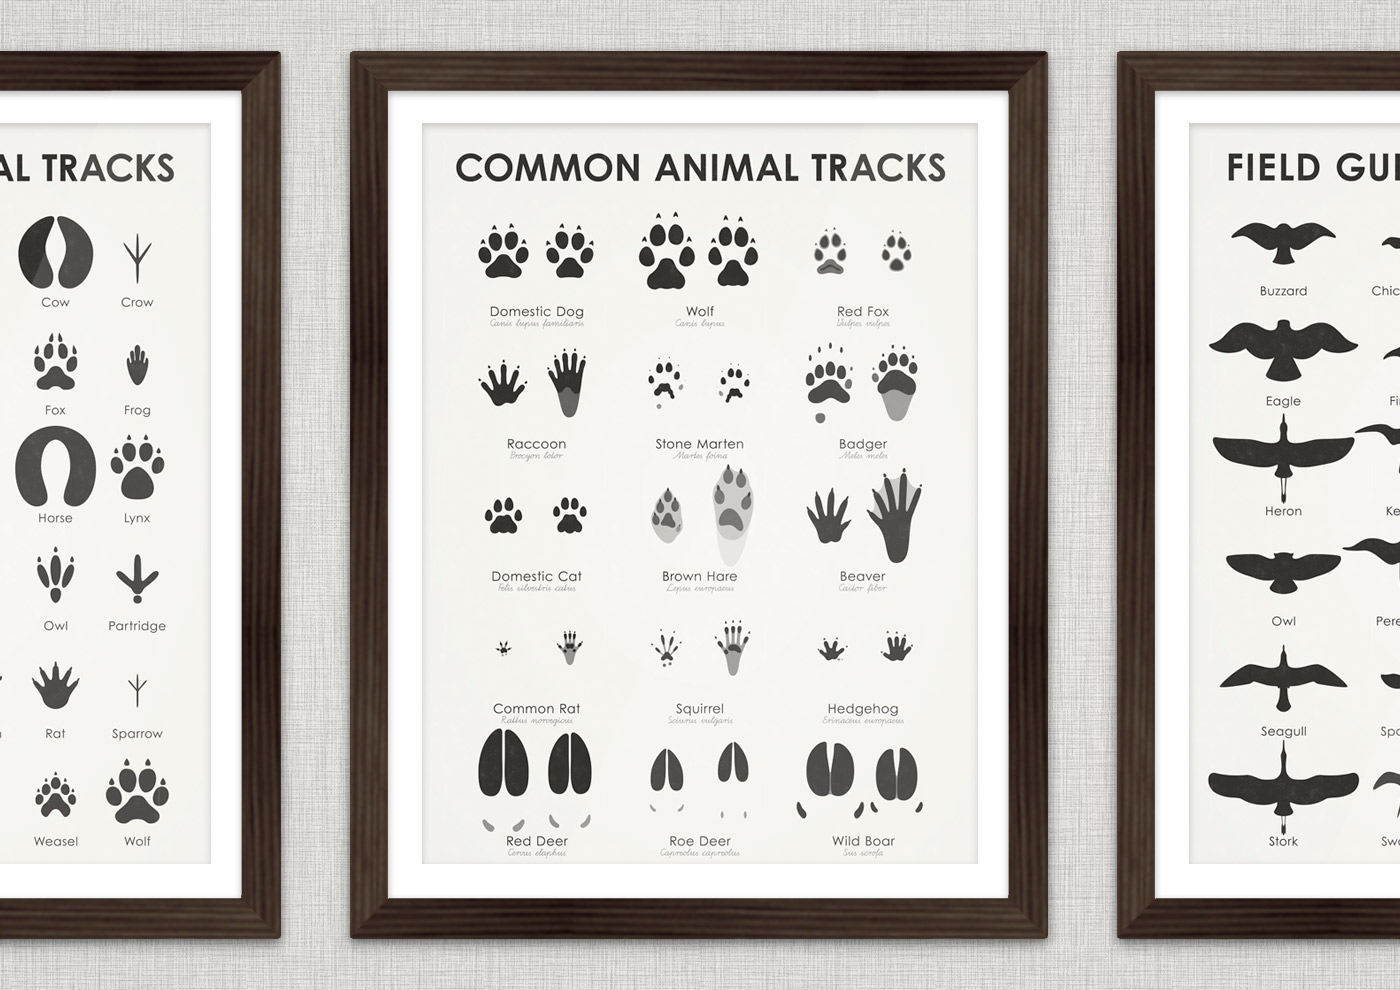 Together with professional track reader Stefanie Argow (Hidden Tracks), I'm currently working on an extended and more detailed version of my simplified animal tracks. So far, I've drawn tracks of front and hind foot, paw or hoof of beaver, badger, squirrel, rabbit, dog, cat, hedgehog, roe, fox, deer, marten, rat, racoon, wild boar and wolf.